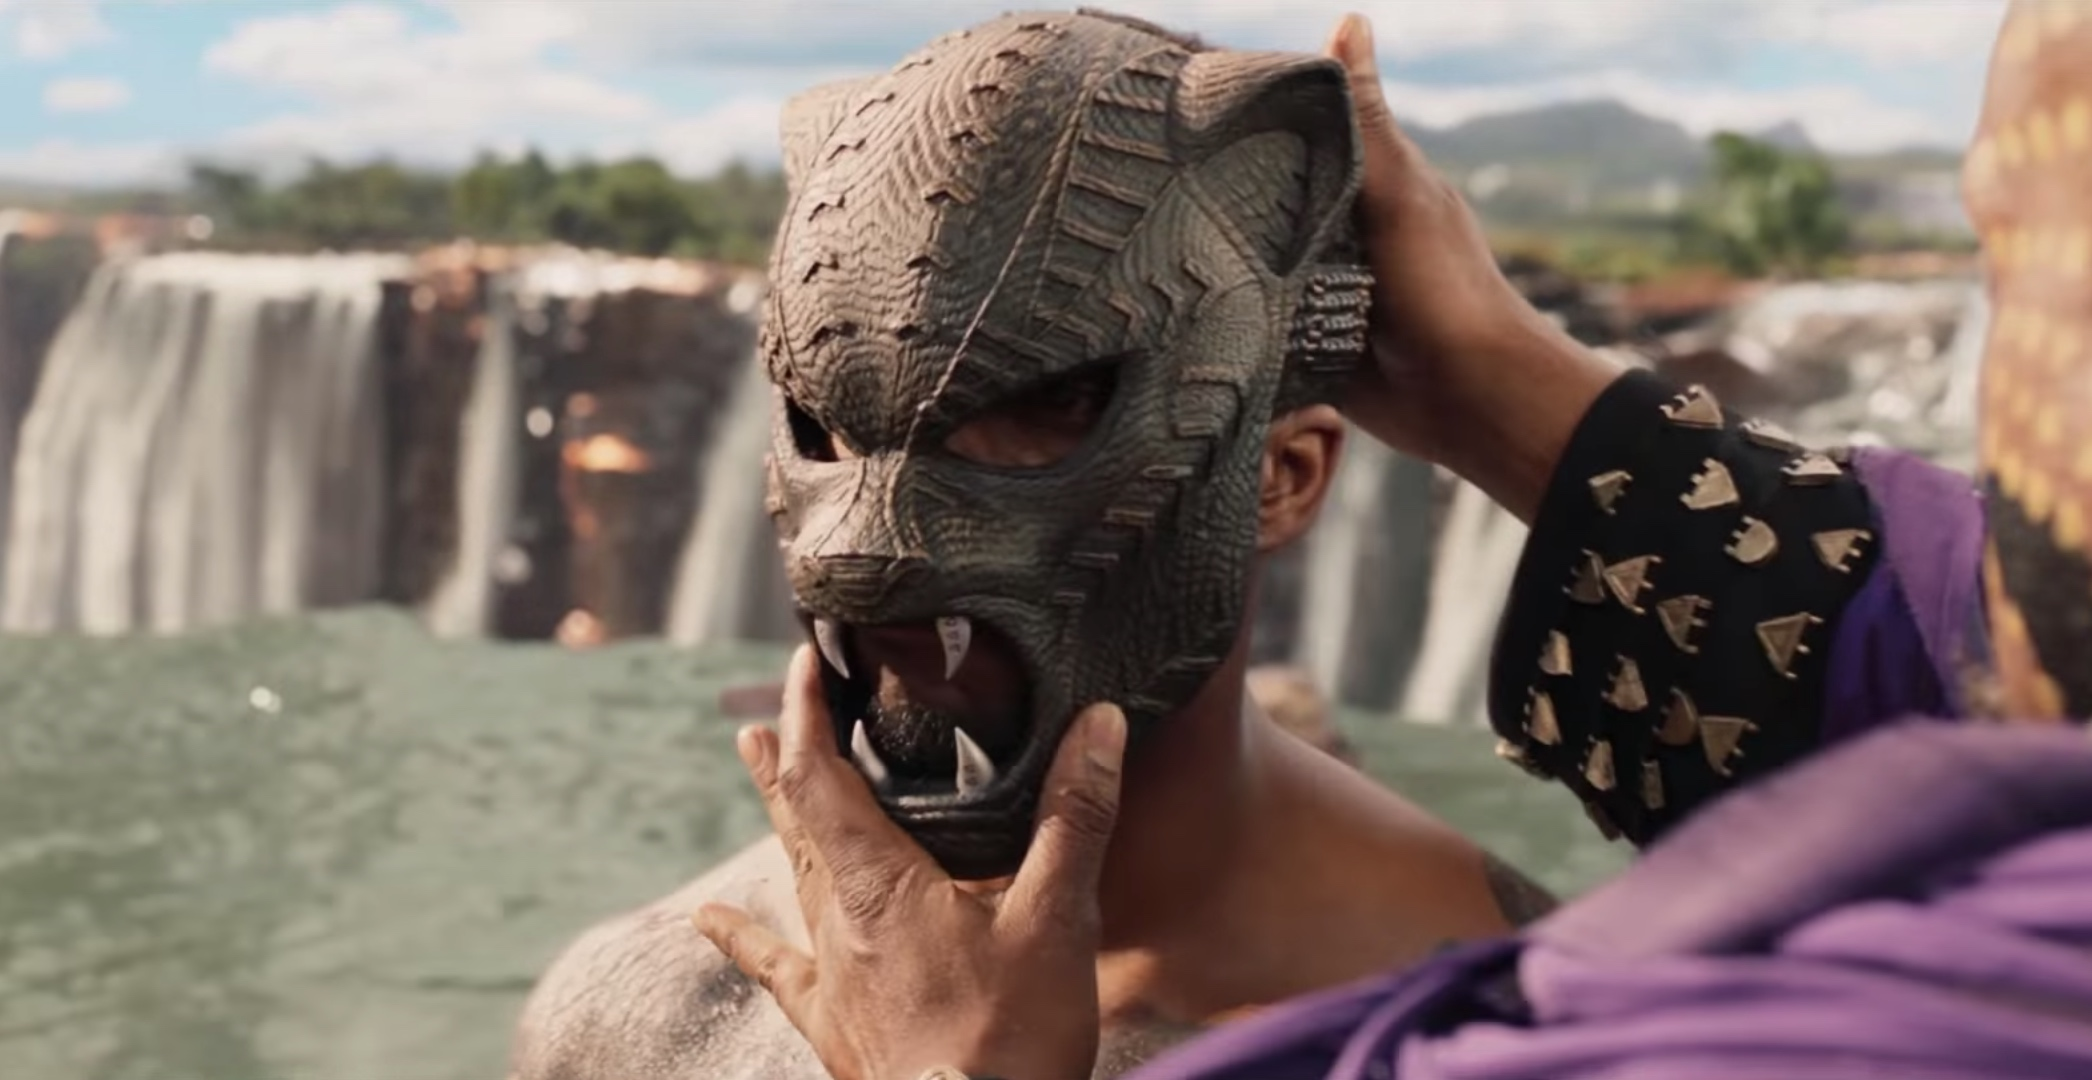 A scene from 'Black Panther' (2018). Source: YouTube